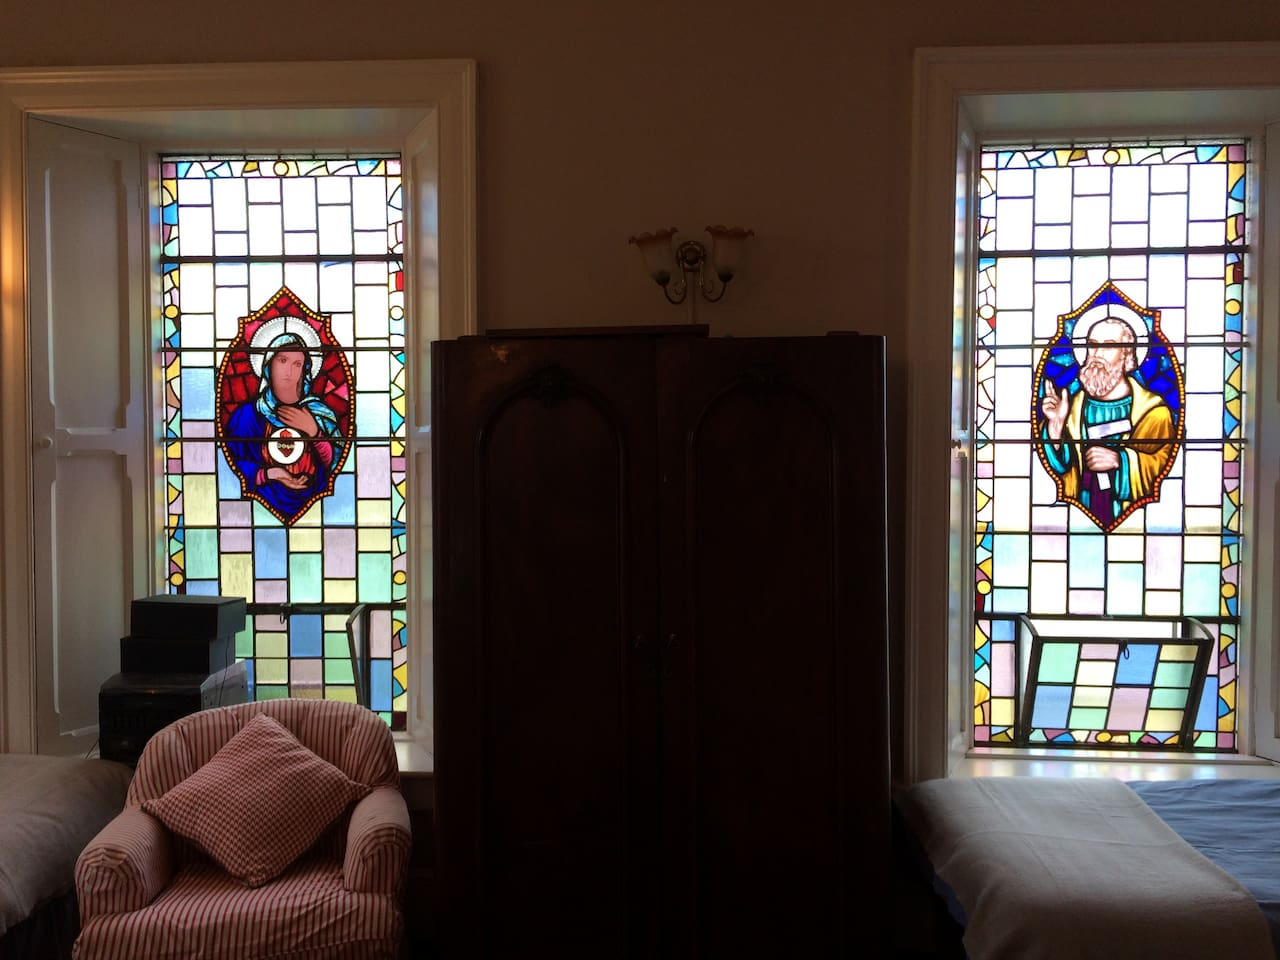 The Chapel features magnificent stained glass windows the house's past live as a home to the Christian Brothers